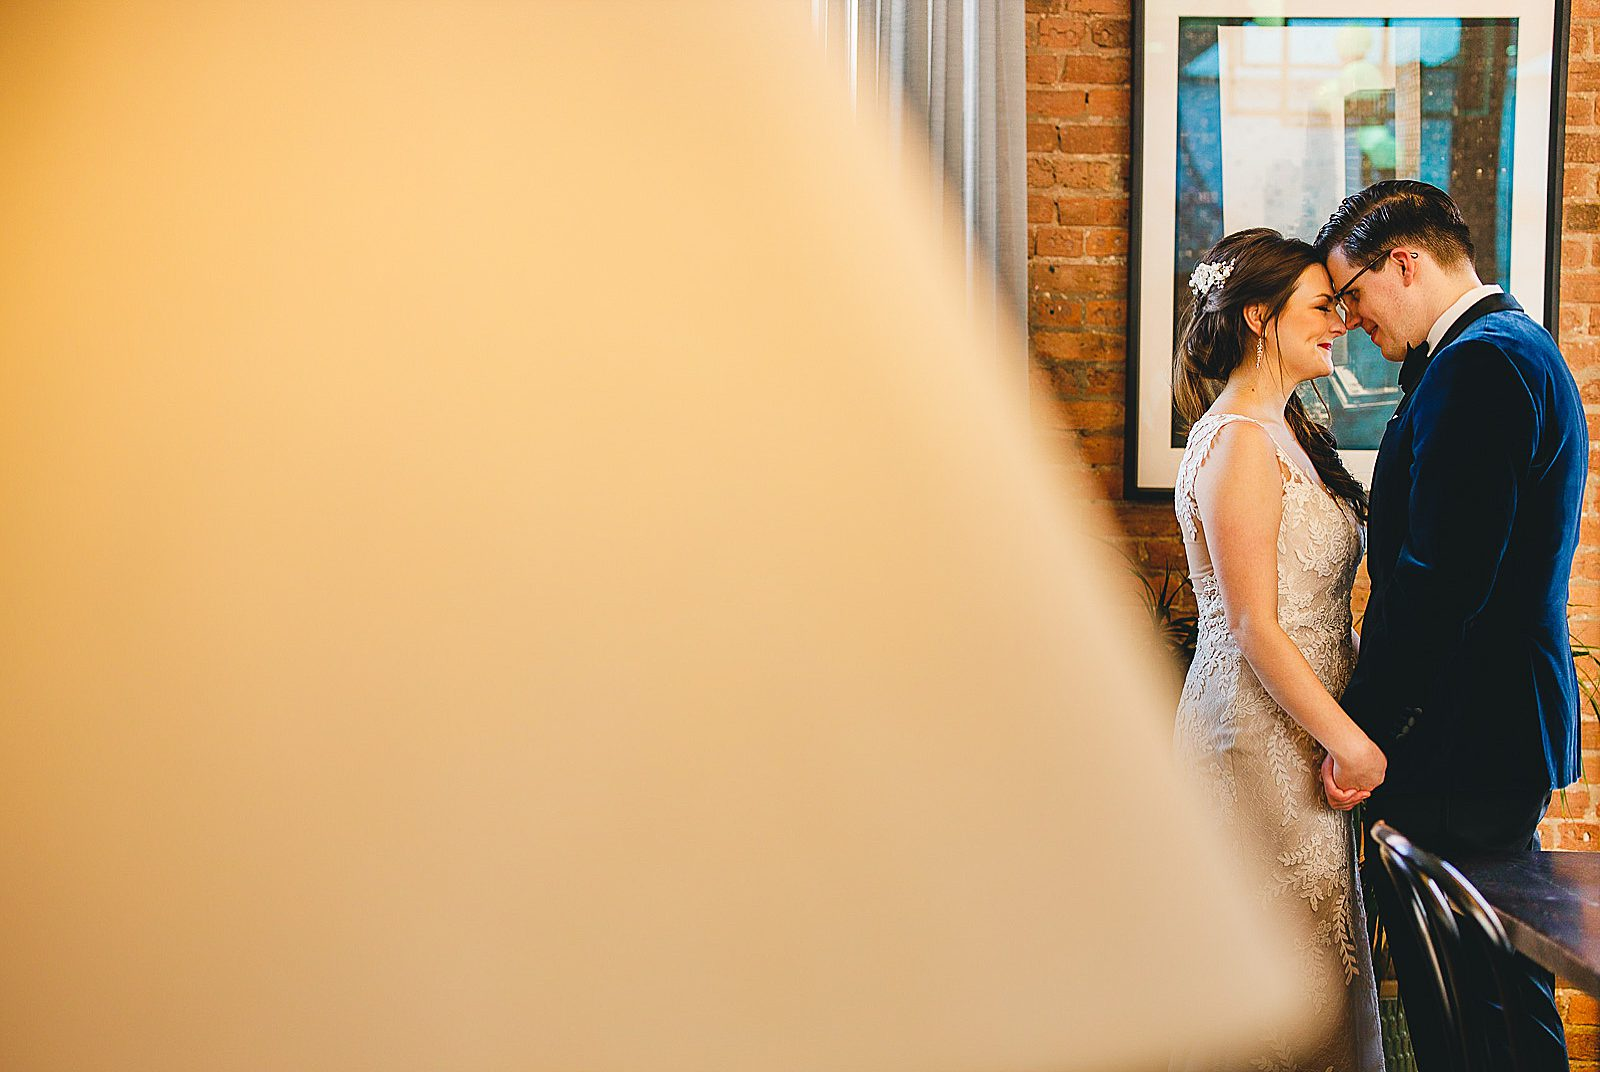 14 chicago wedding photograhy - The Wedding of Samantha + Kyle in Chicago